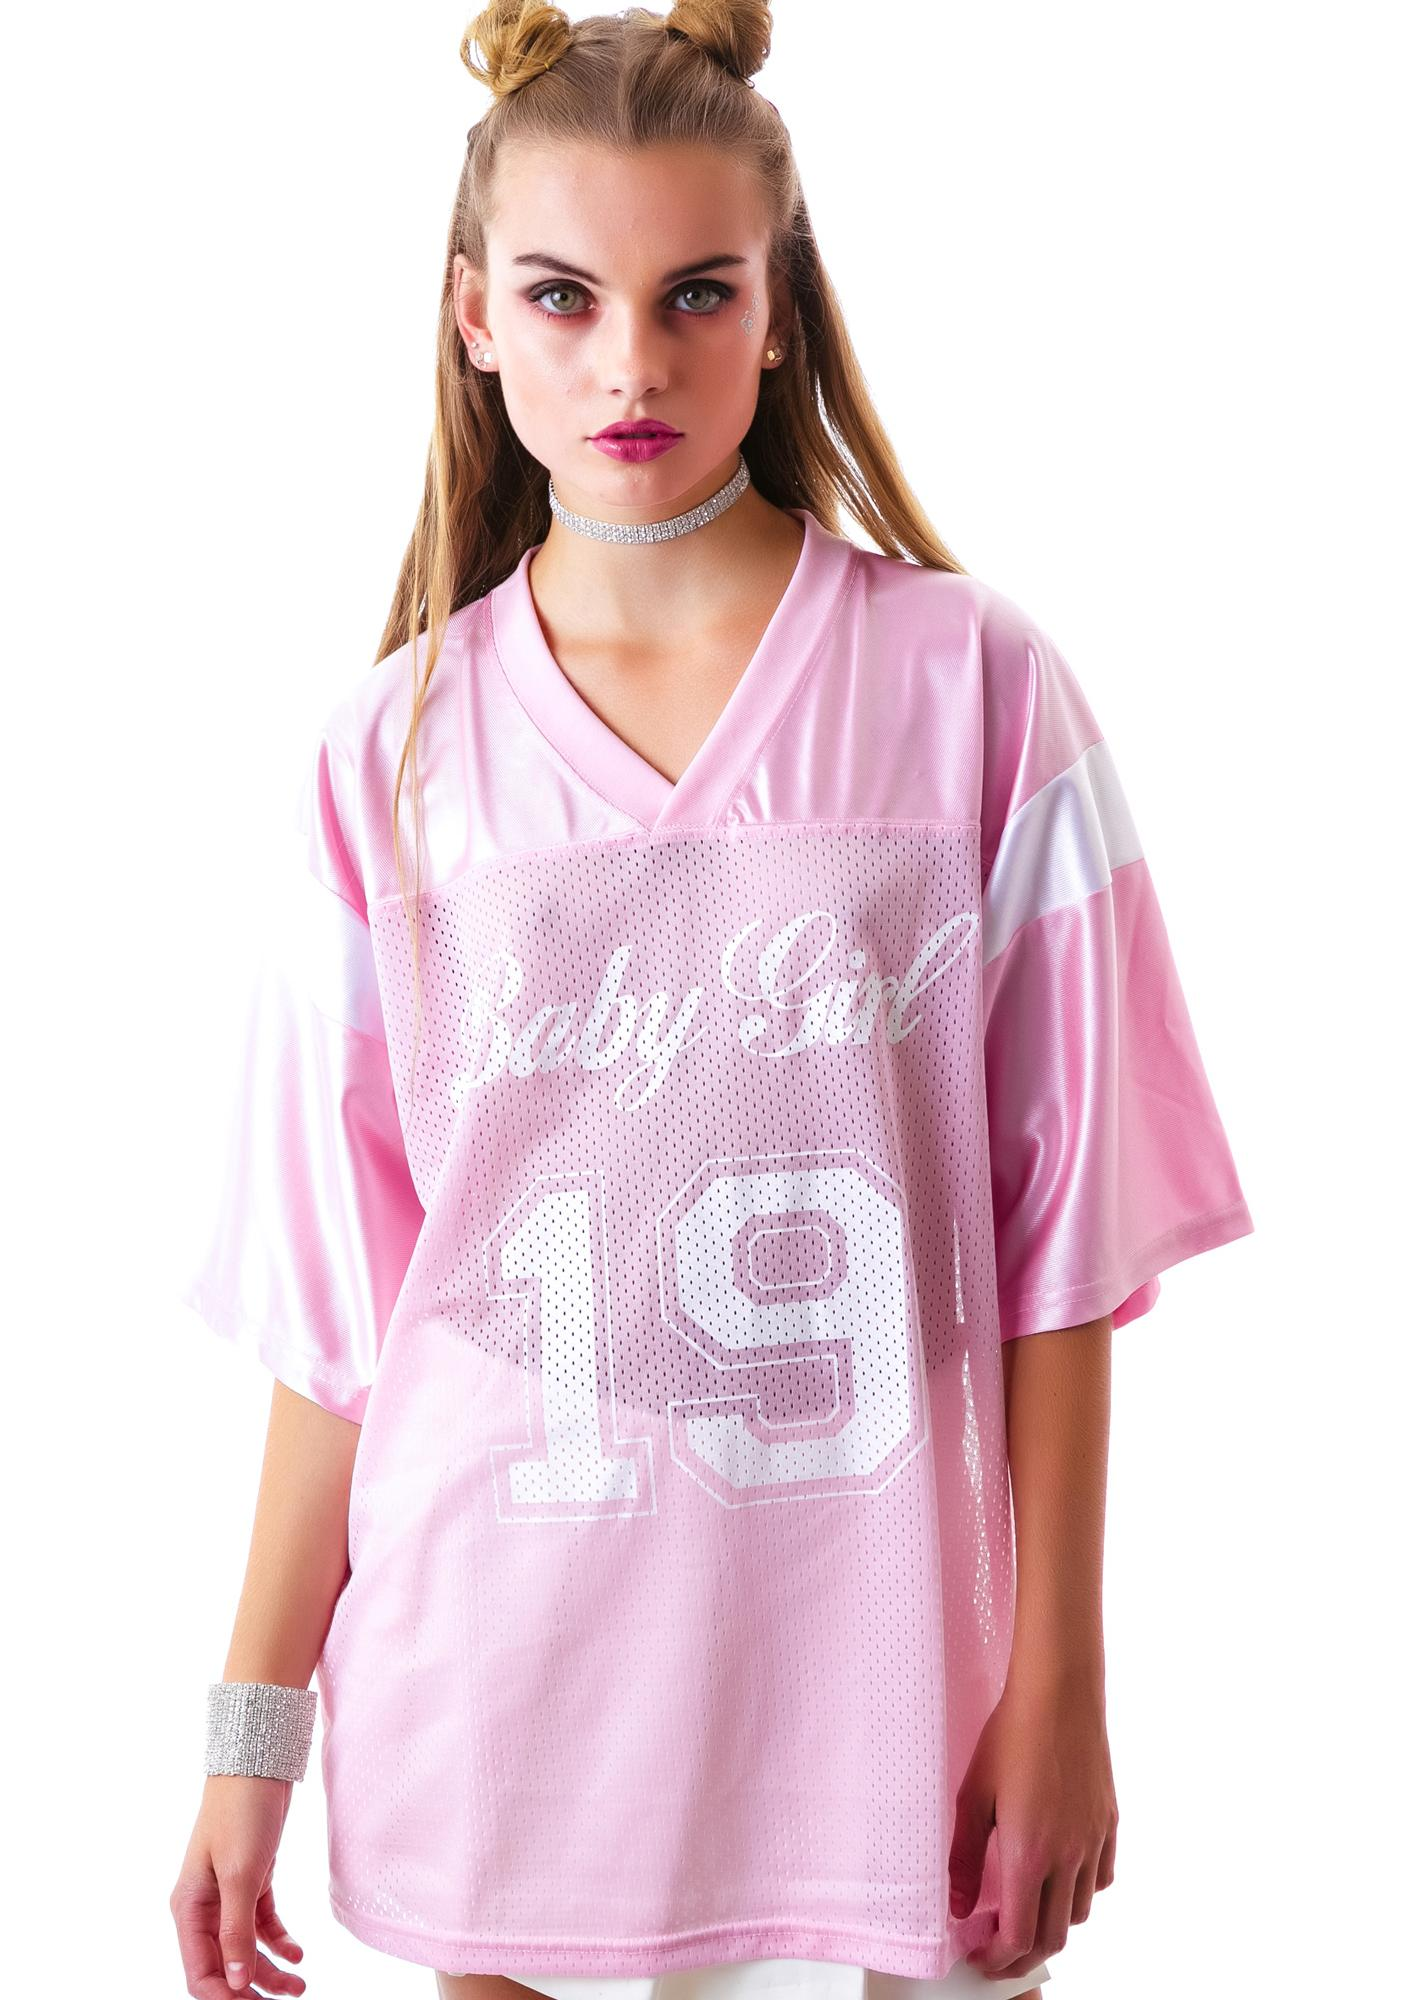 United Couture Baby Girl 19 Jersey